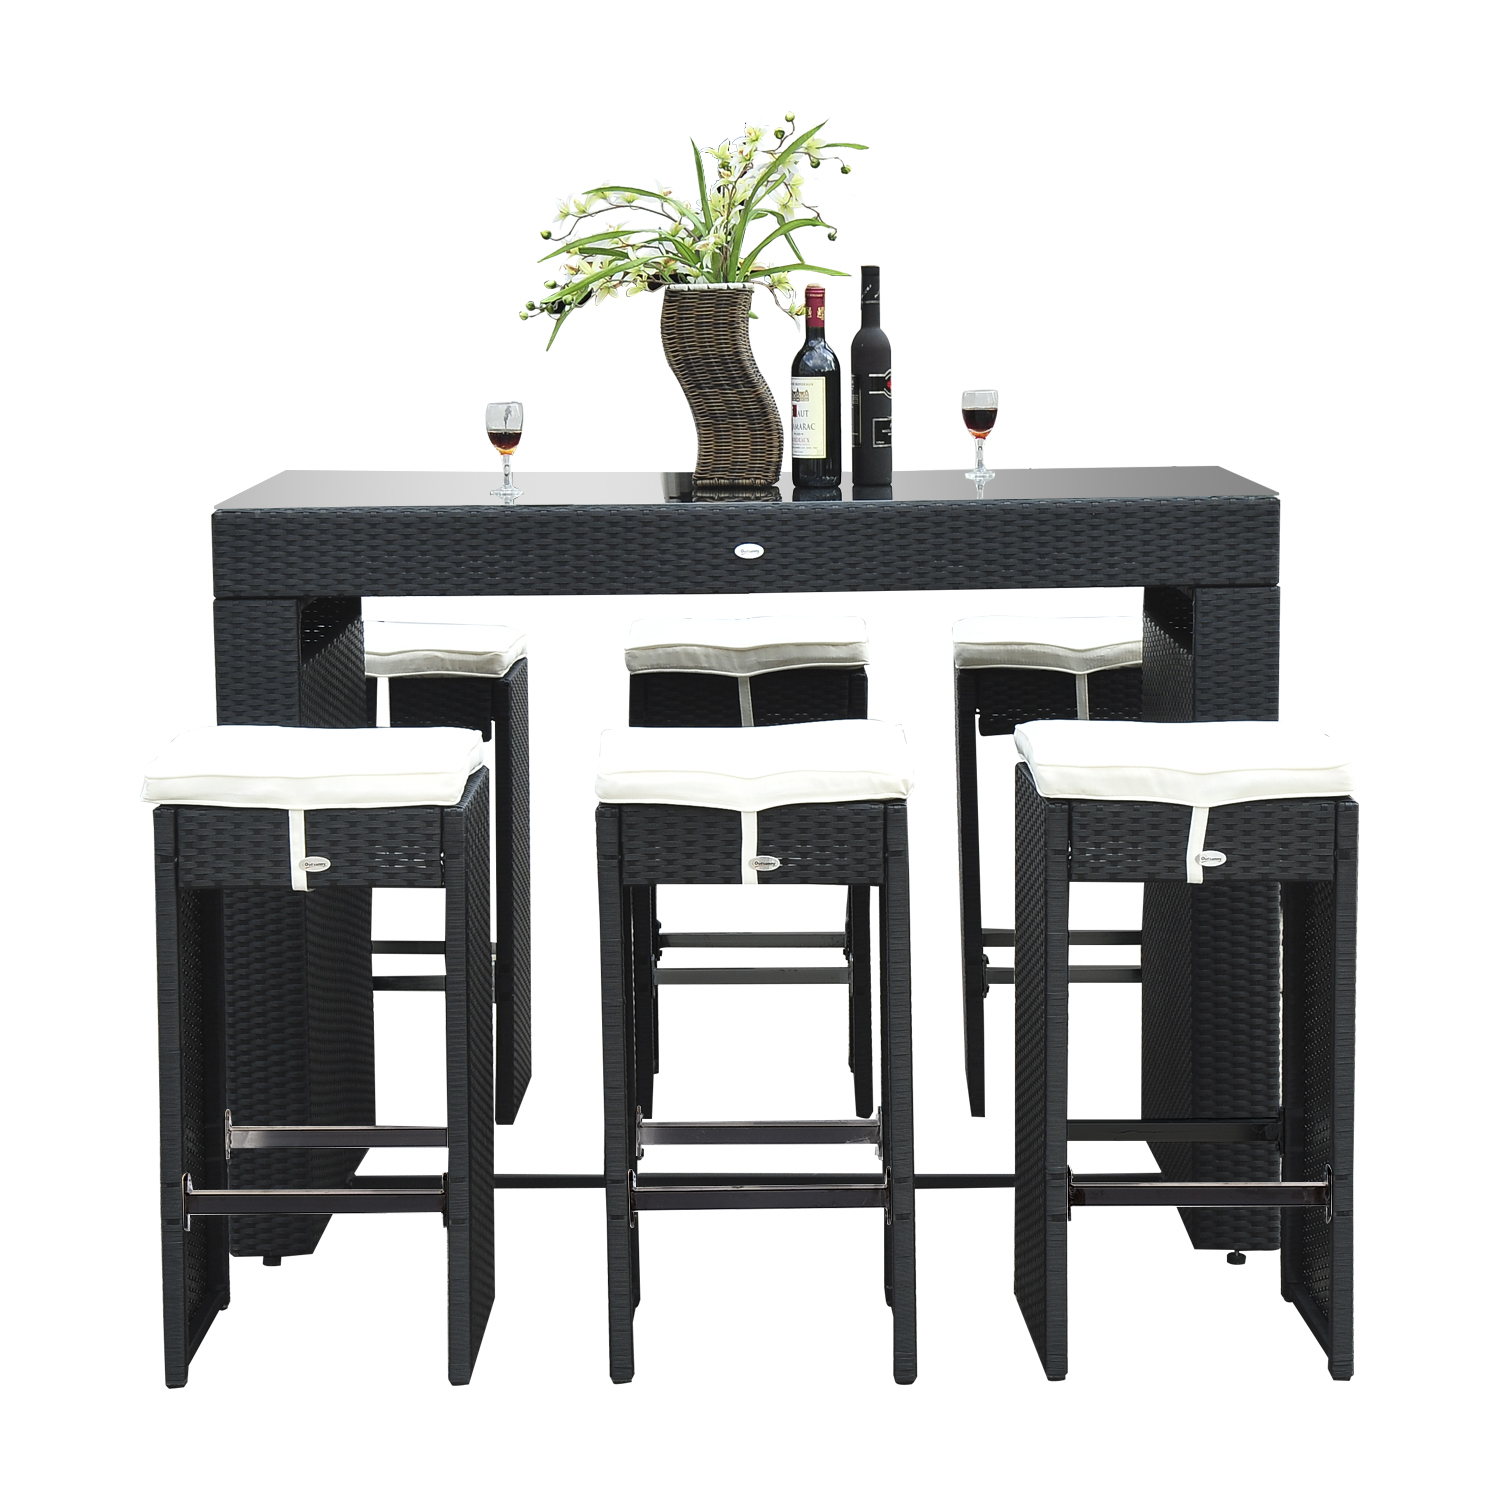 Outsunny 7pc Rattan Wicker Bar Stool Dining Table Set - Black - Walmart.com  sc 1 st  Walmart & Outsunny 7pc Rattan Wicker Bar Stool Dining Table Set - Black ...